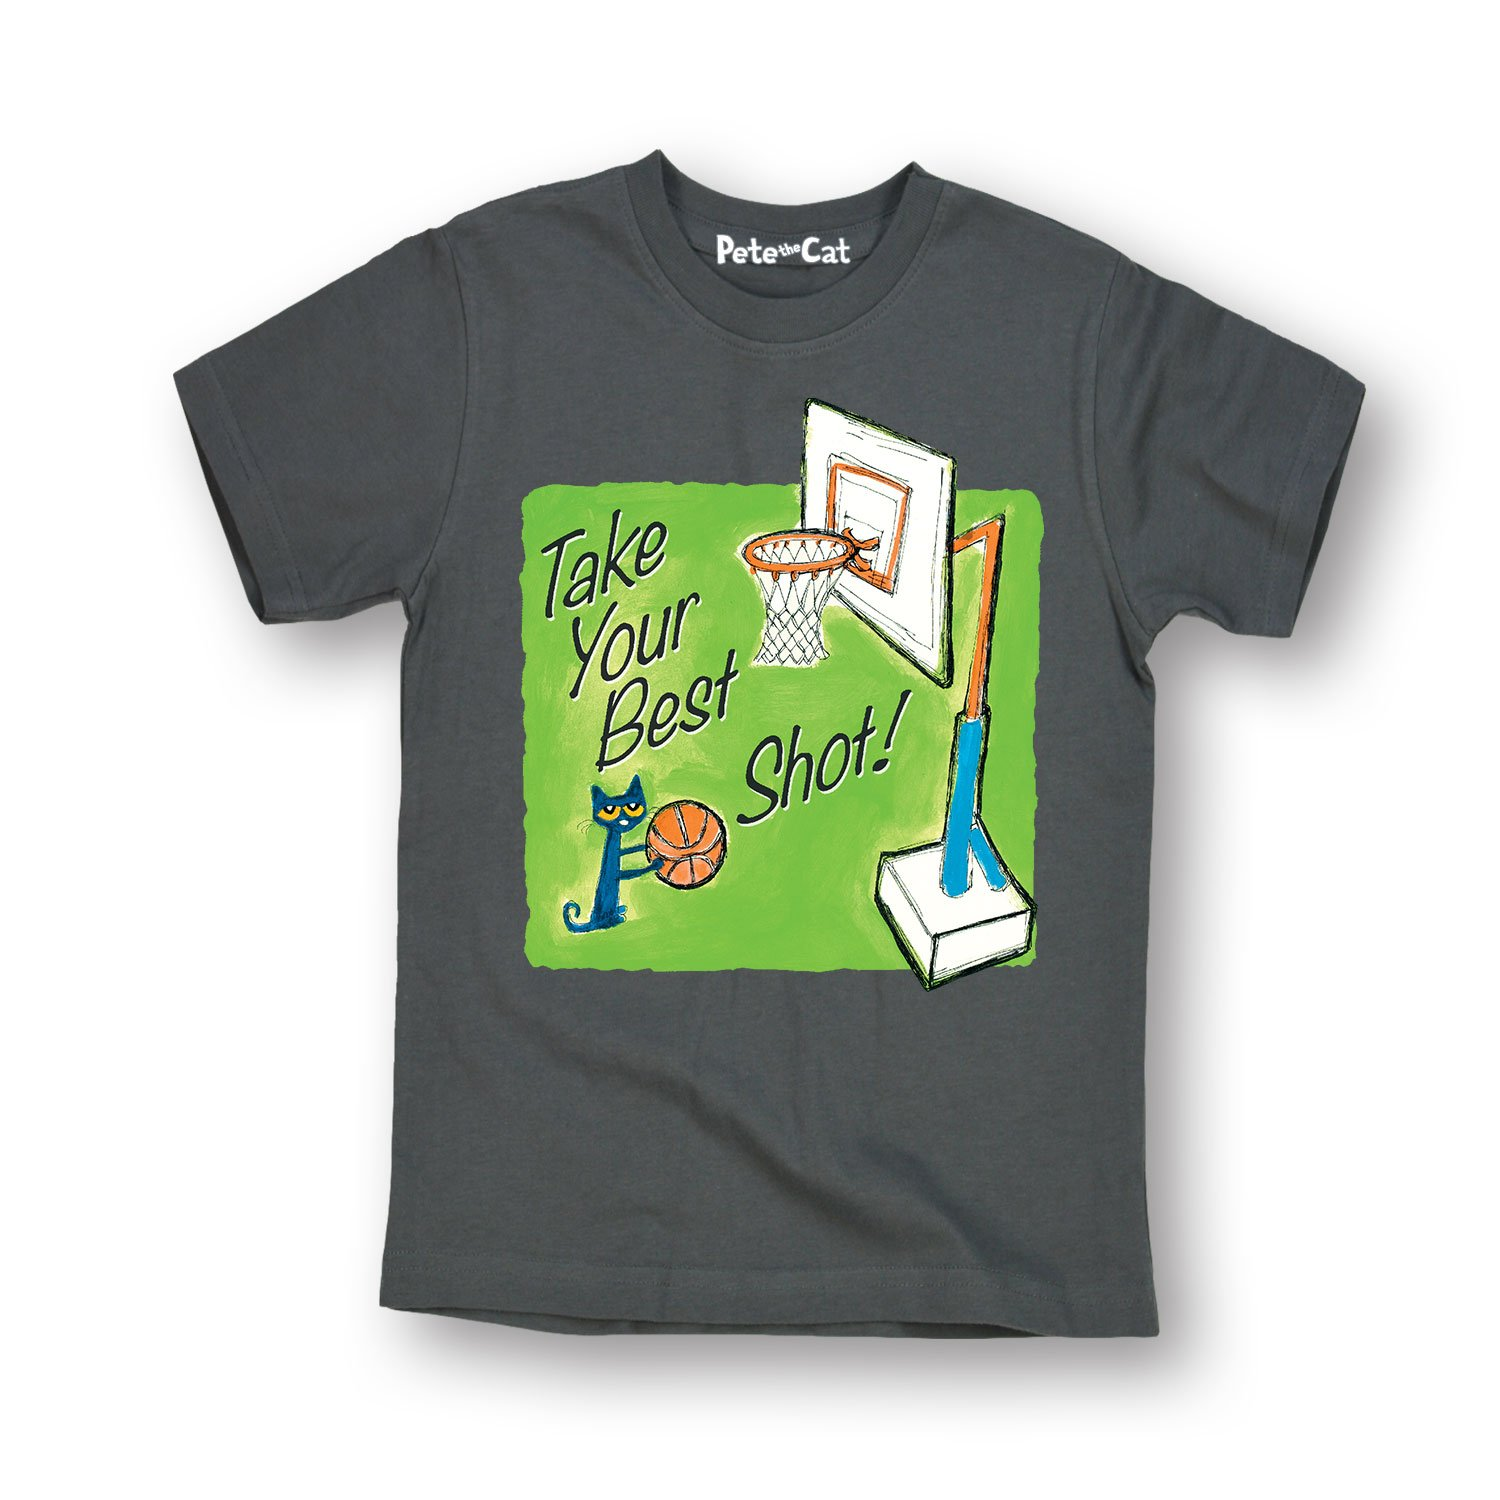 Toddler Short Sleeve Tee Pete the Cat Take Your Best Shot Multi